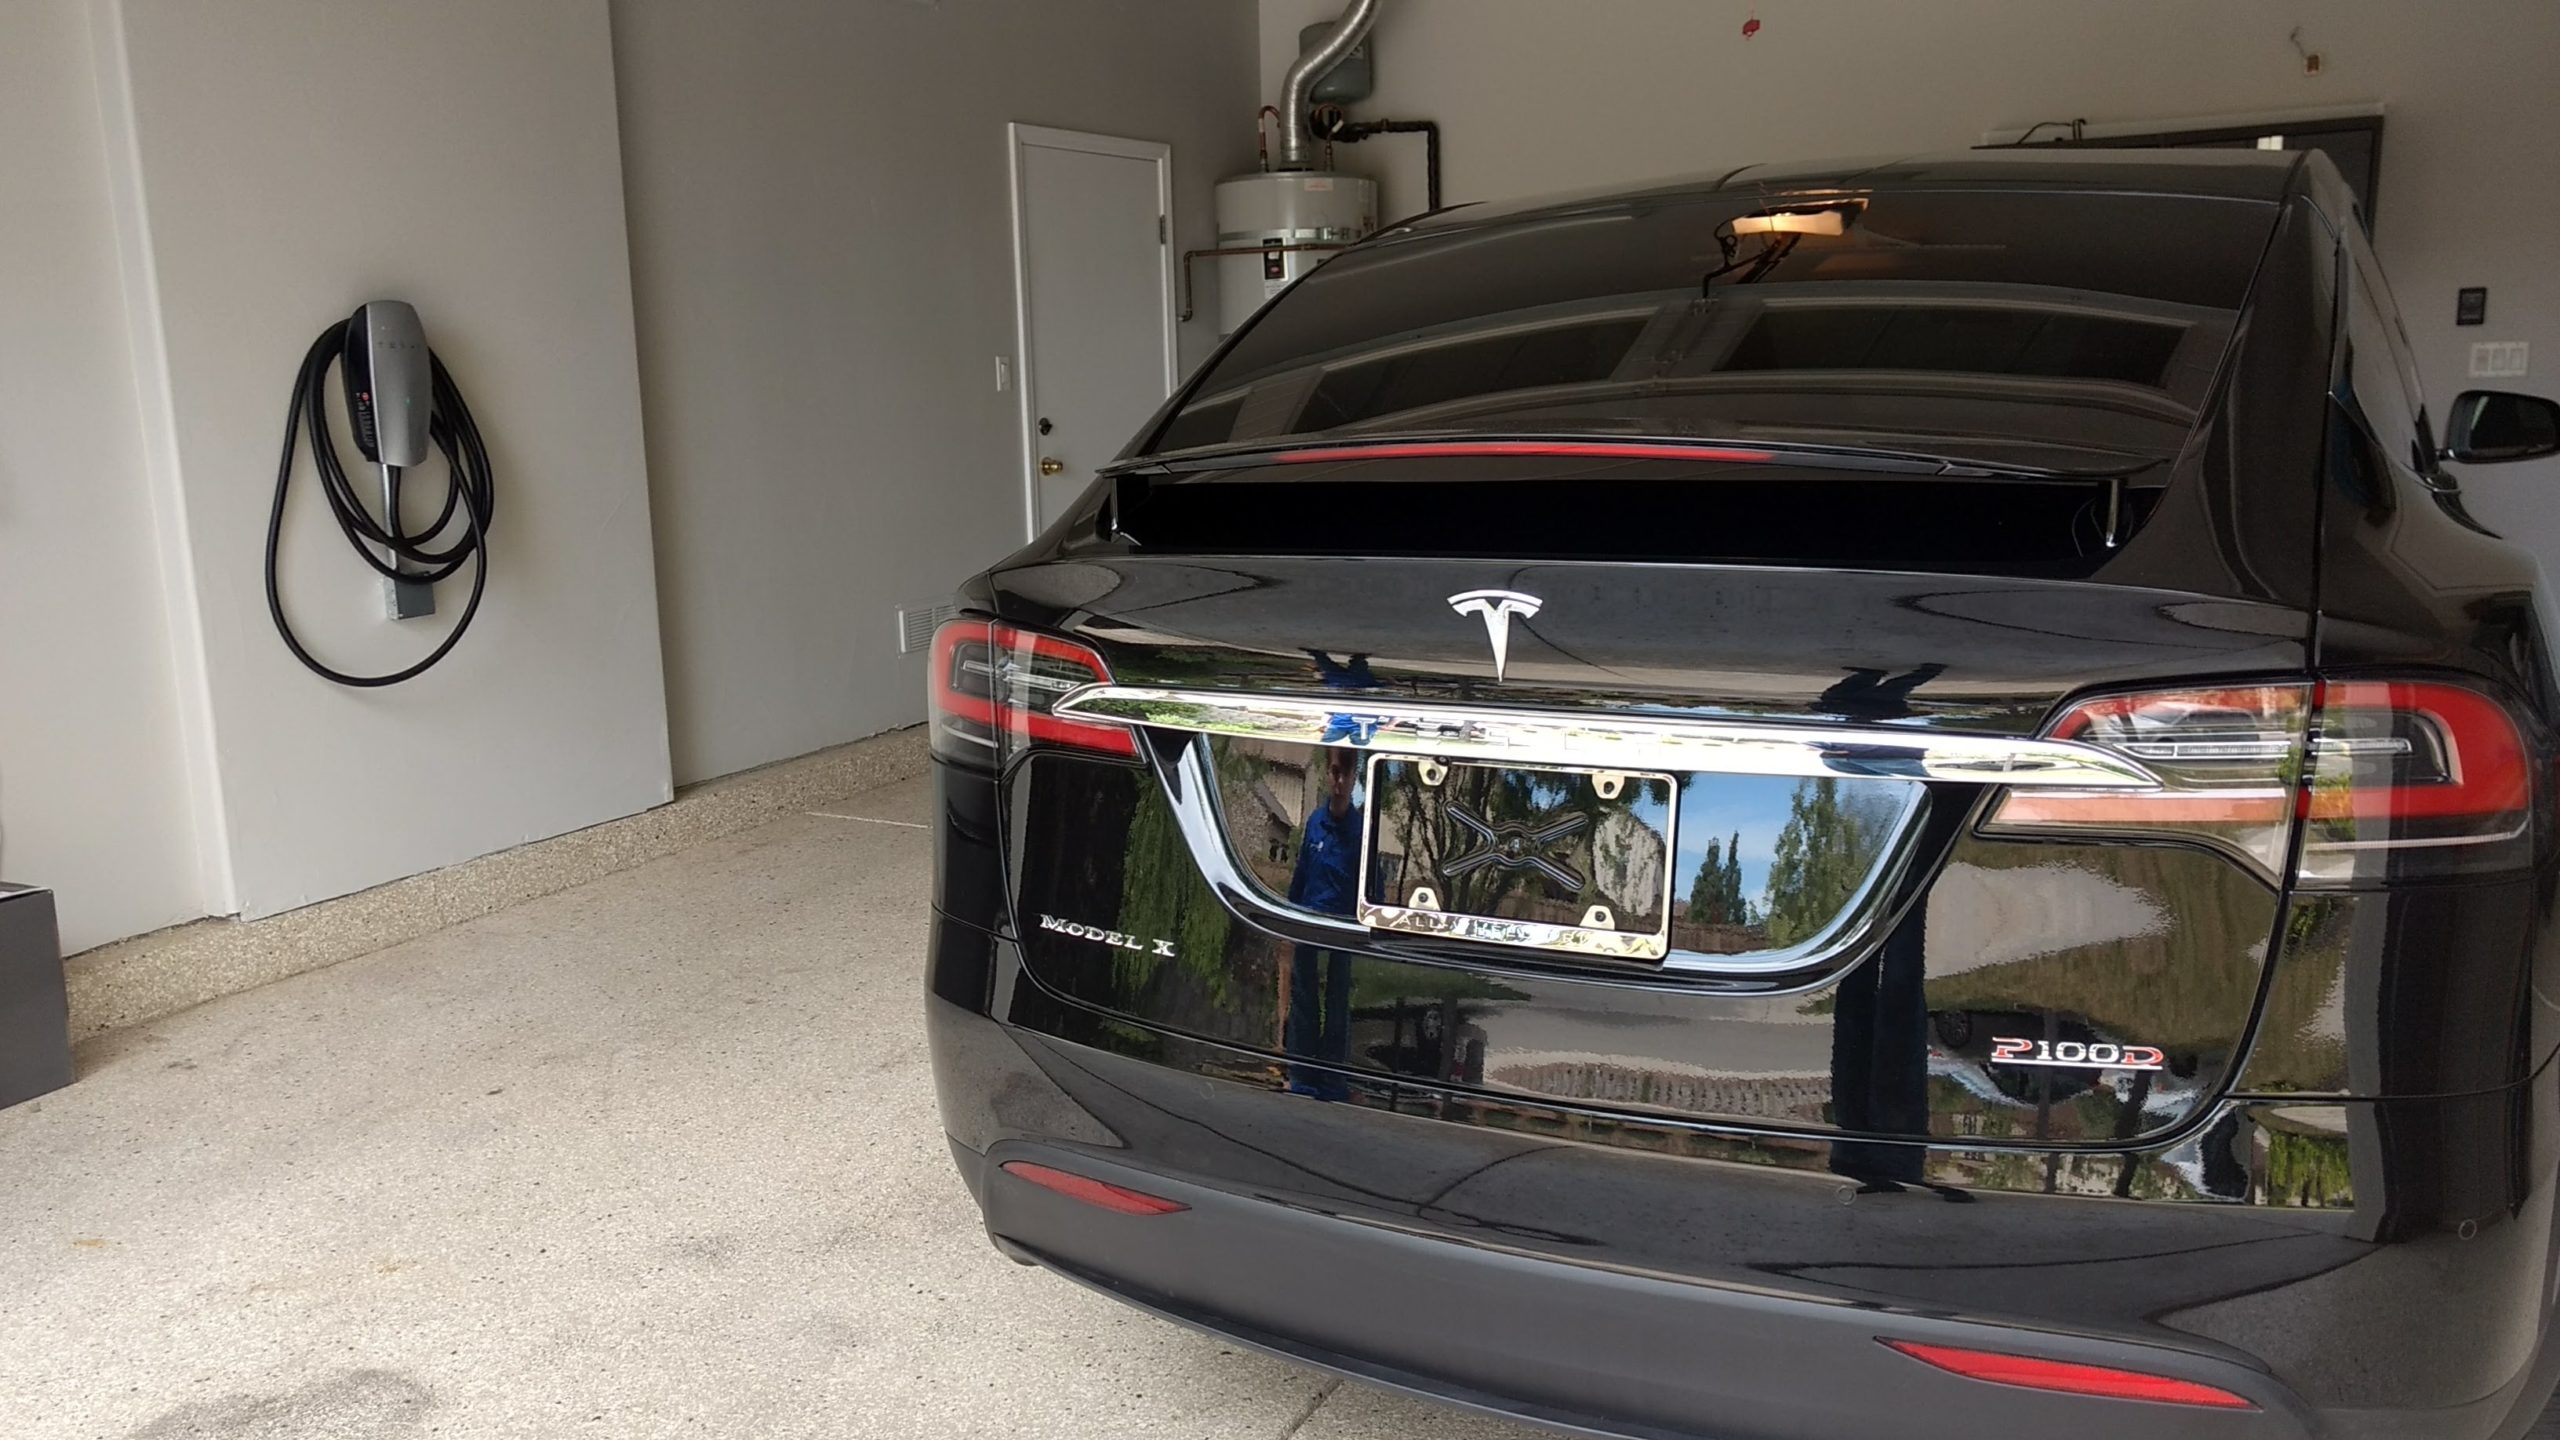 Electric Car Home Charger Installations